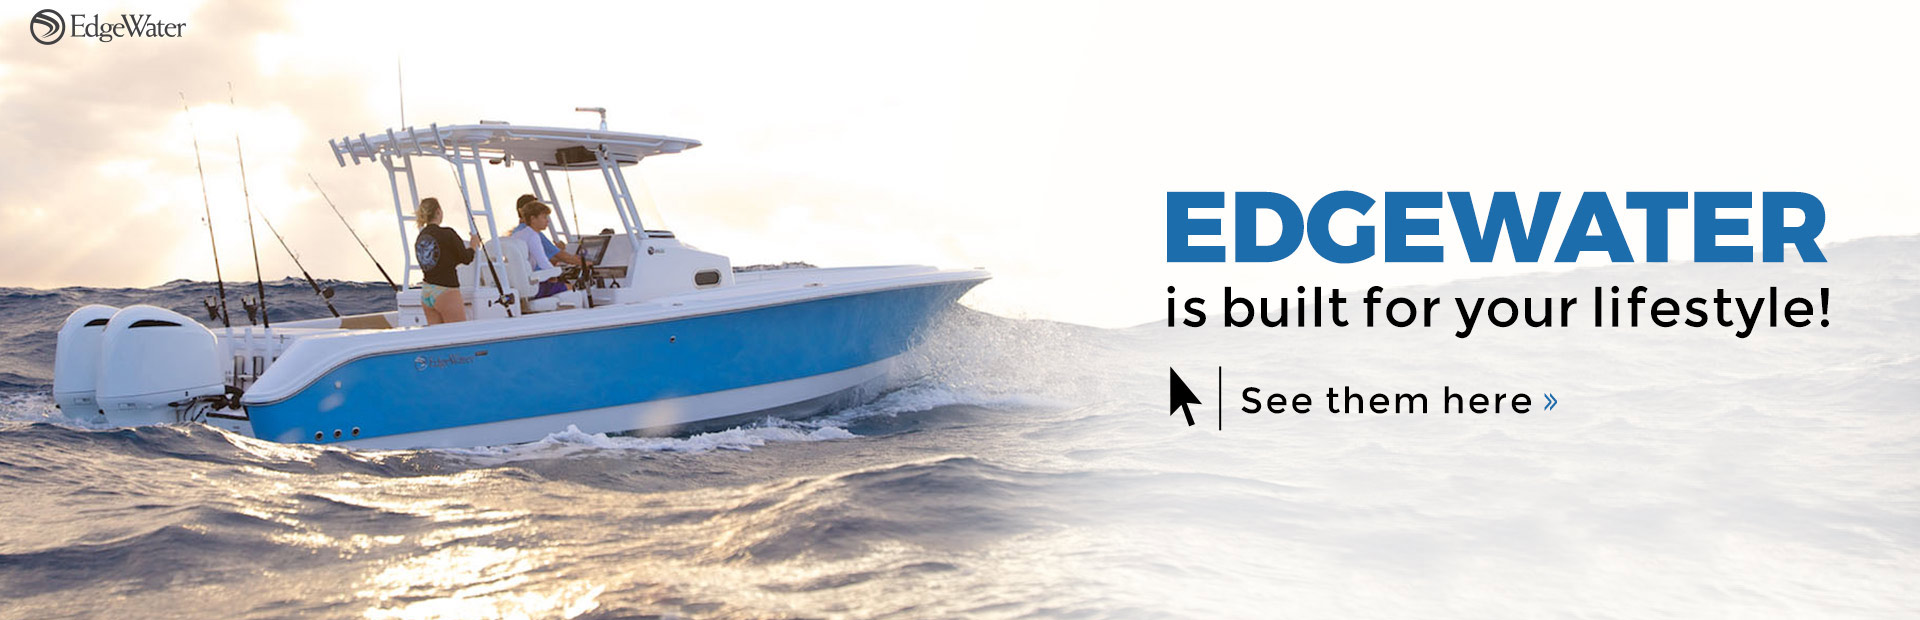 EdgeWater Boats are built for your lifestyle! Click here to view the models.